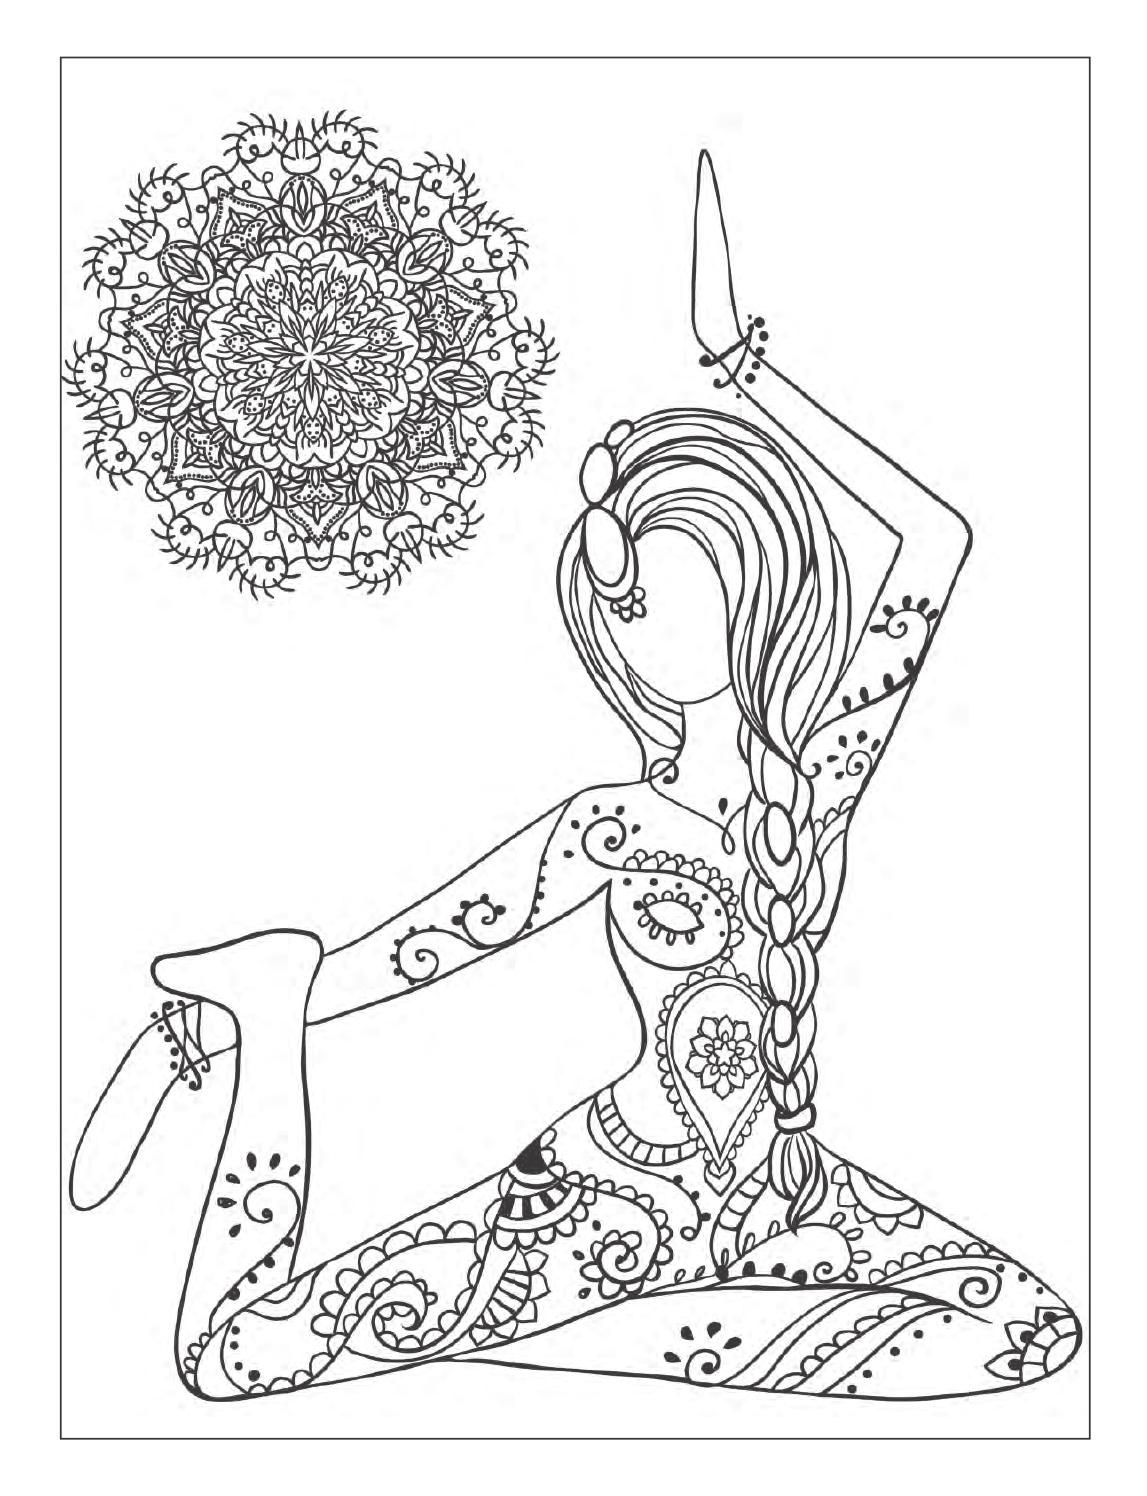 1147x1496 Complete Abc Yoga Coloring Pages Just Arrived Free Namaste Om Page